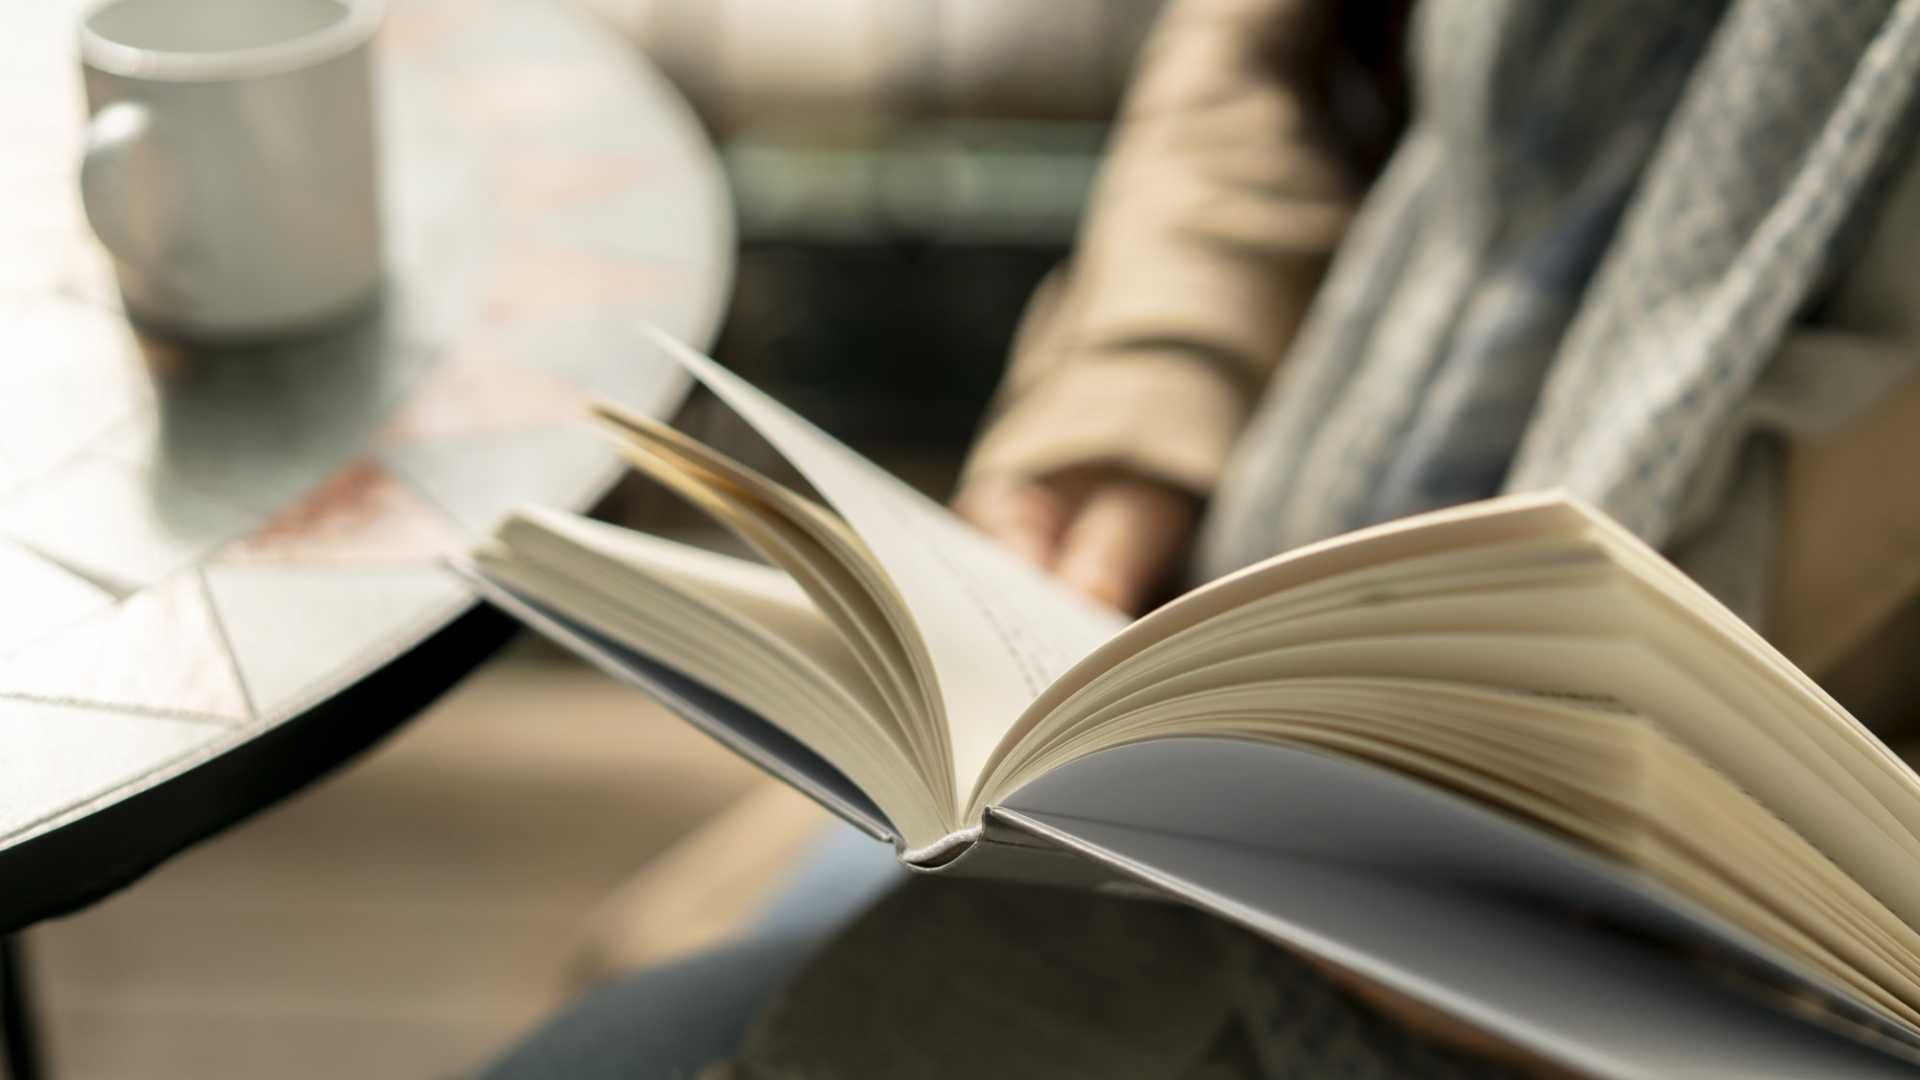 Reading does not have to be time-consuming, and it definitely improves your EQ.